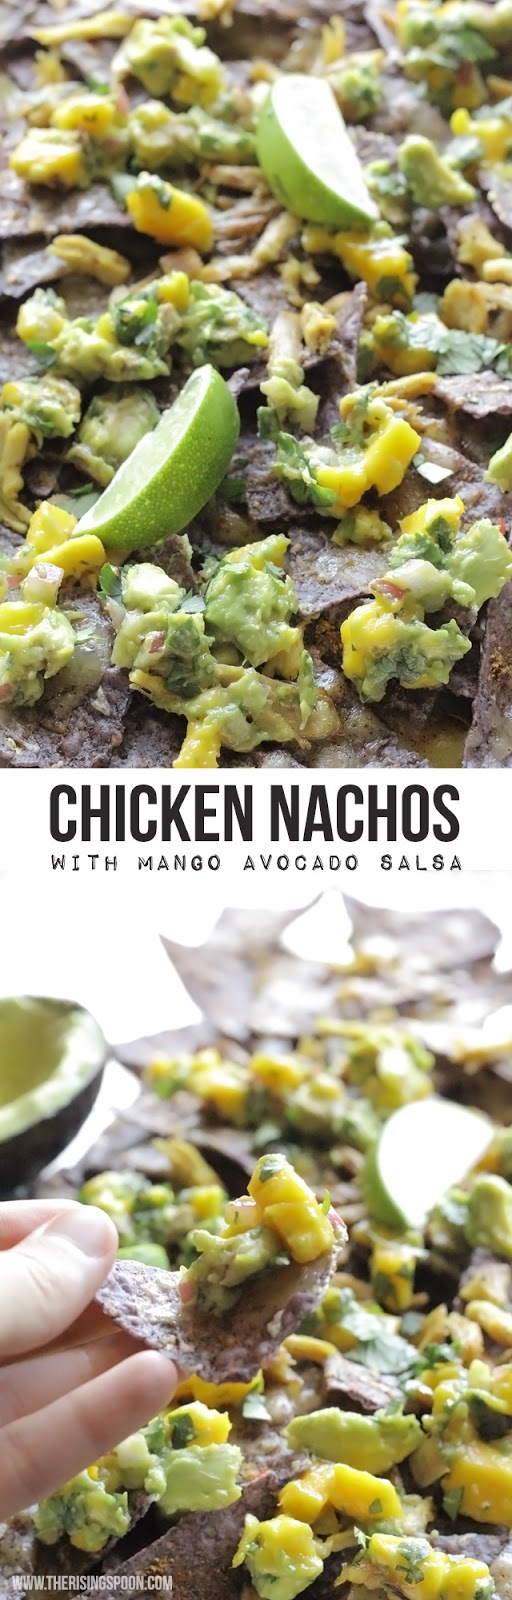 Chicken Nachos with Mango Avocado Salsa | www.therisingspoon.com